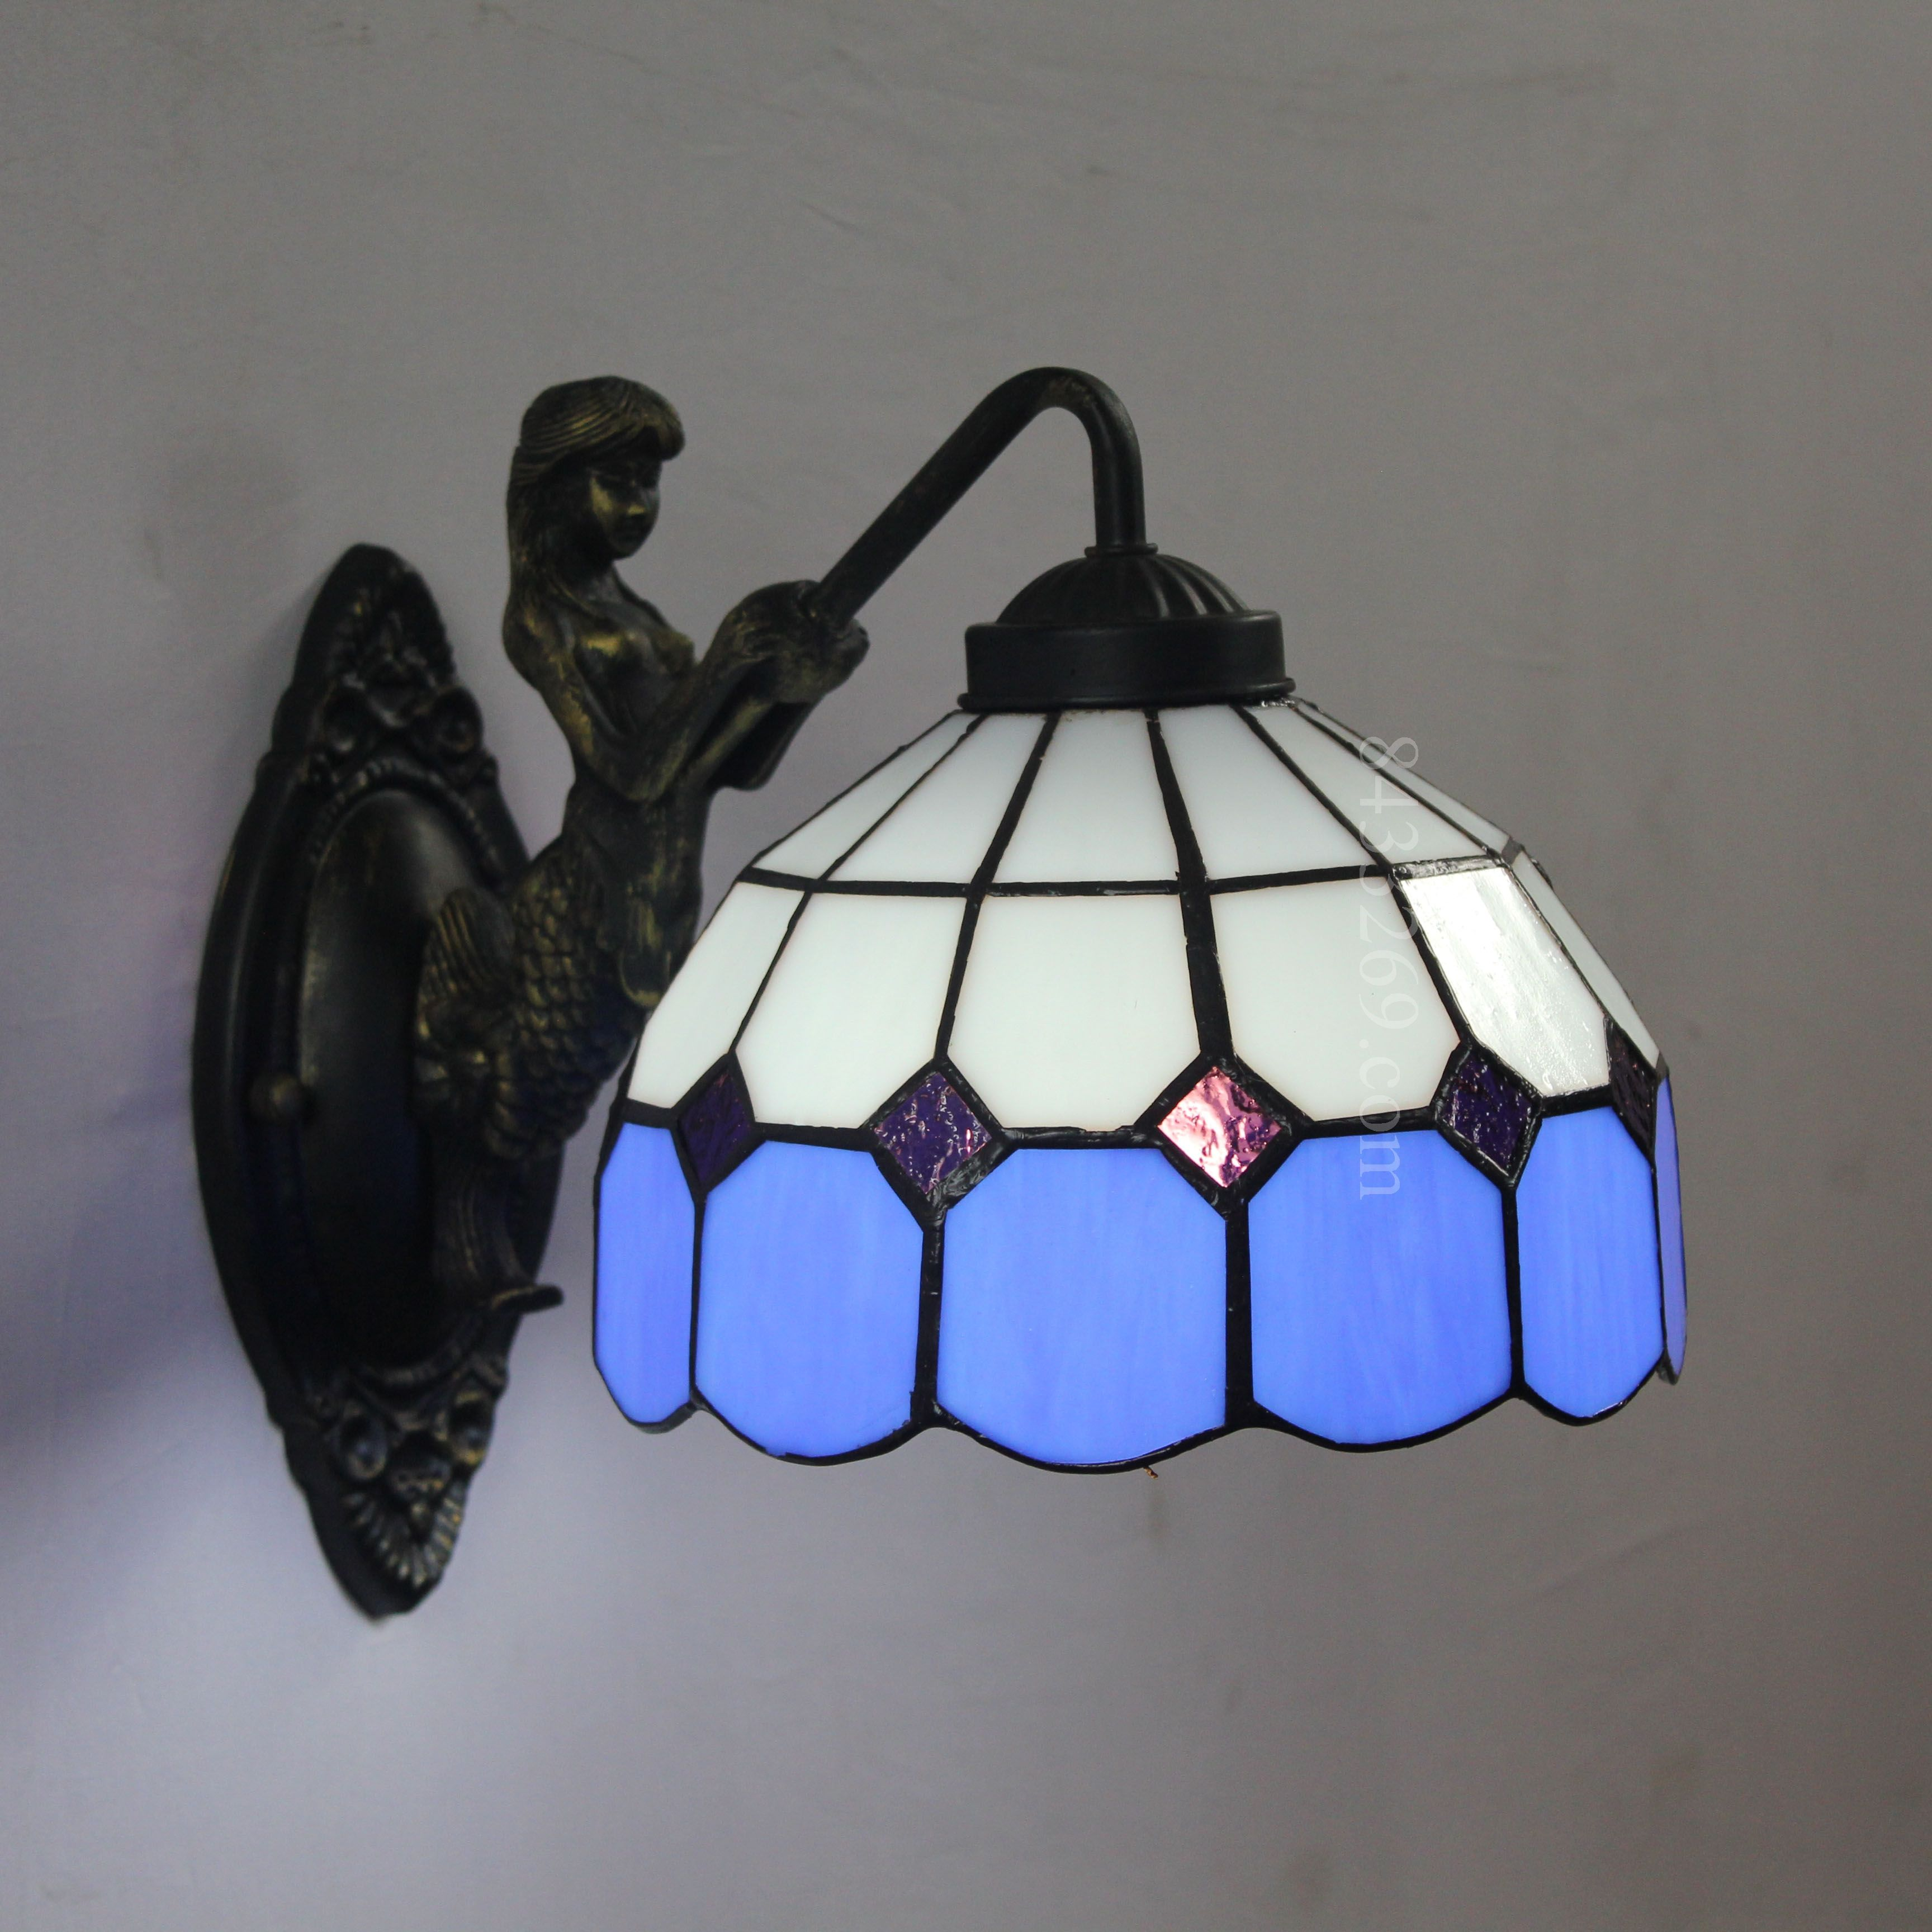 Grid Tiffany Lamp 8s9 1bw1 Lamp Sconce Lamp Glass Wall Sconce